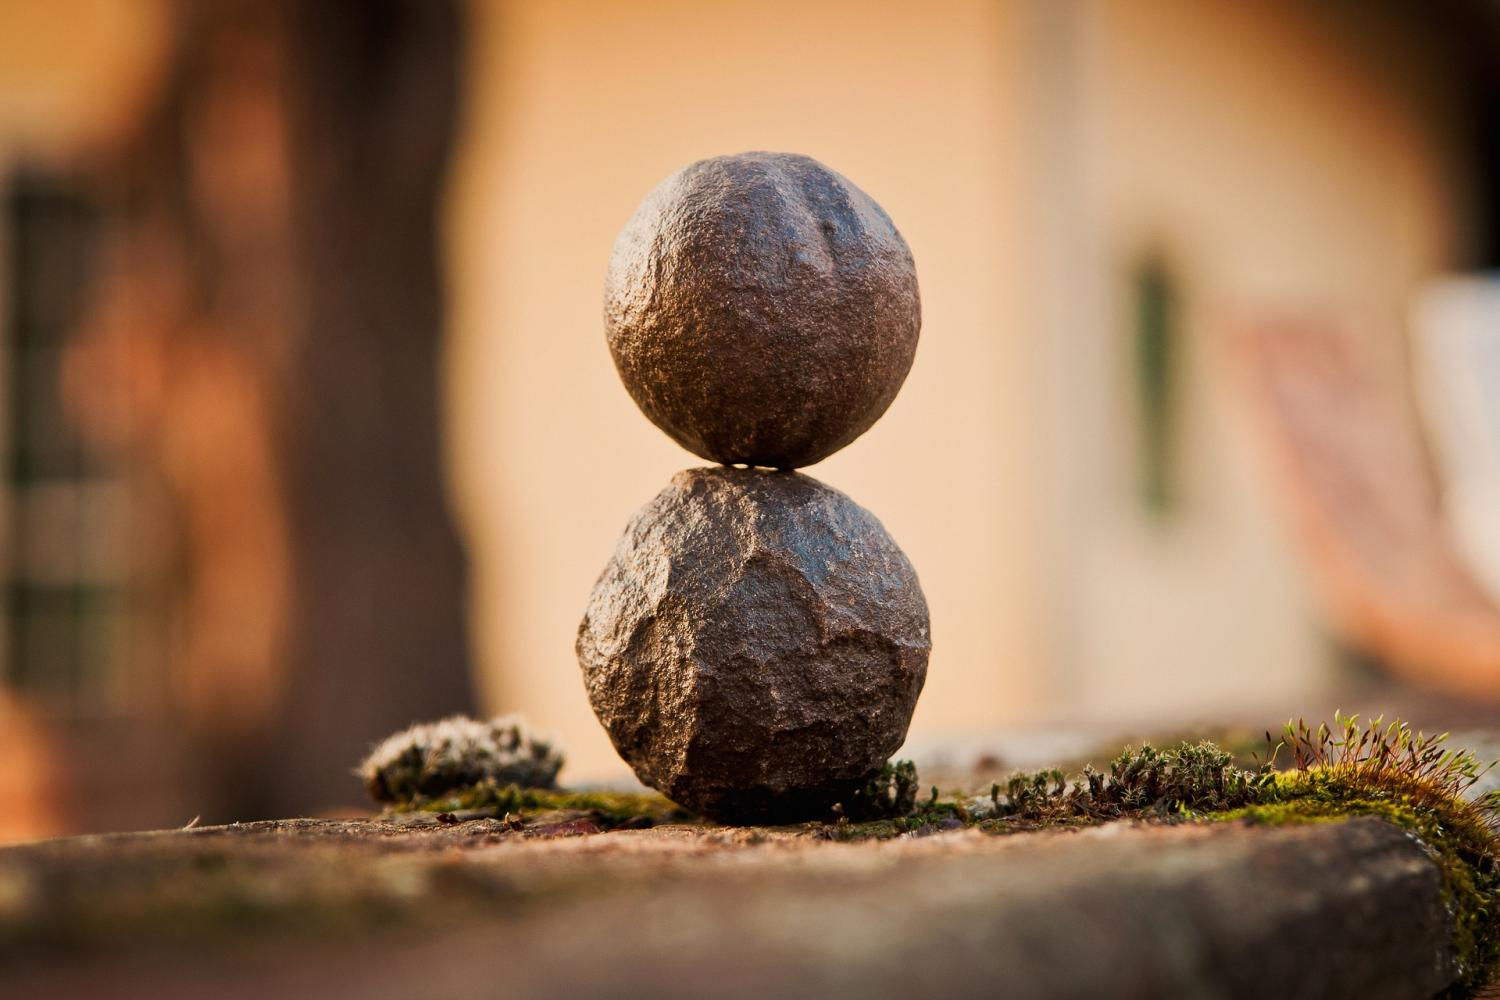 Mindfulness just as effective as CBT for a broad range of psychiatric symptoms